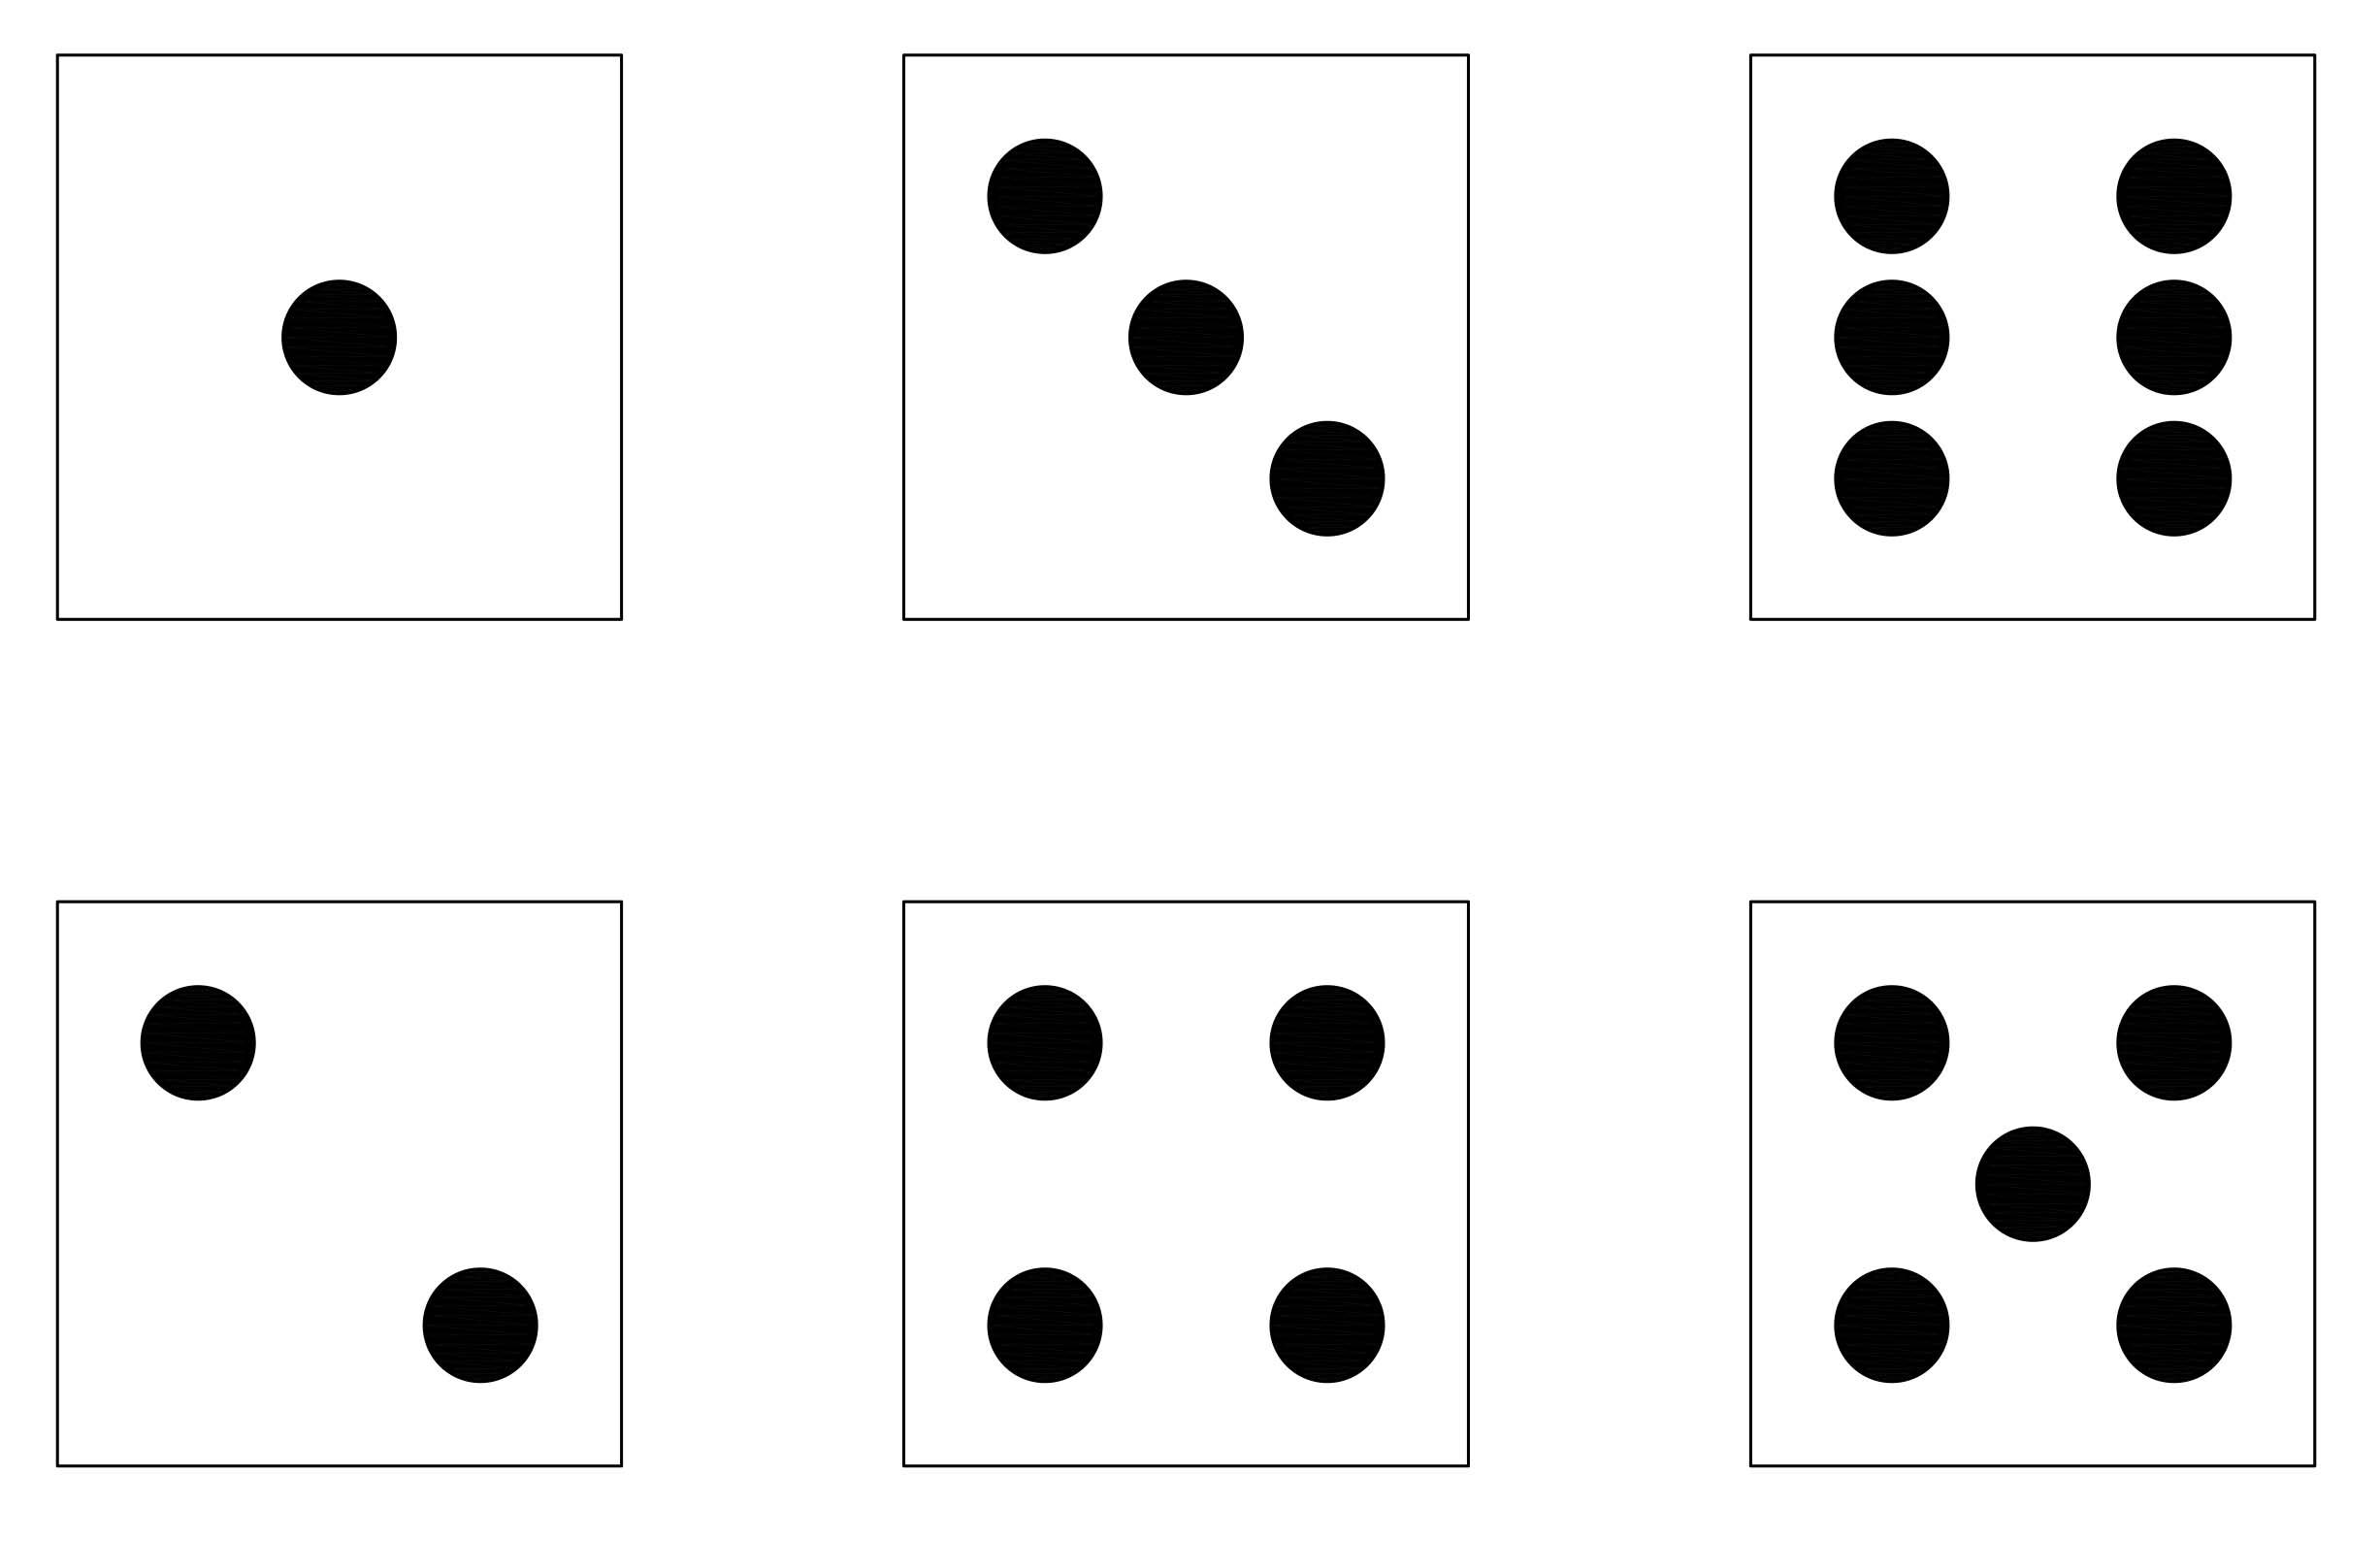 10 sided dice images 1-6